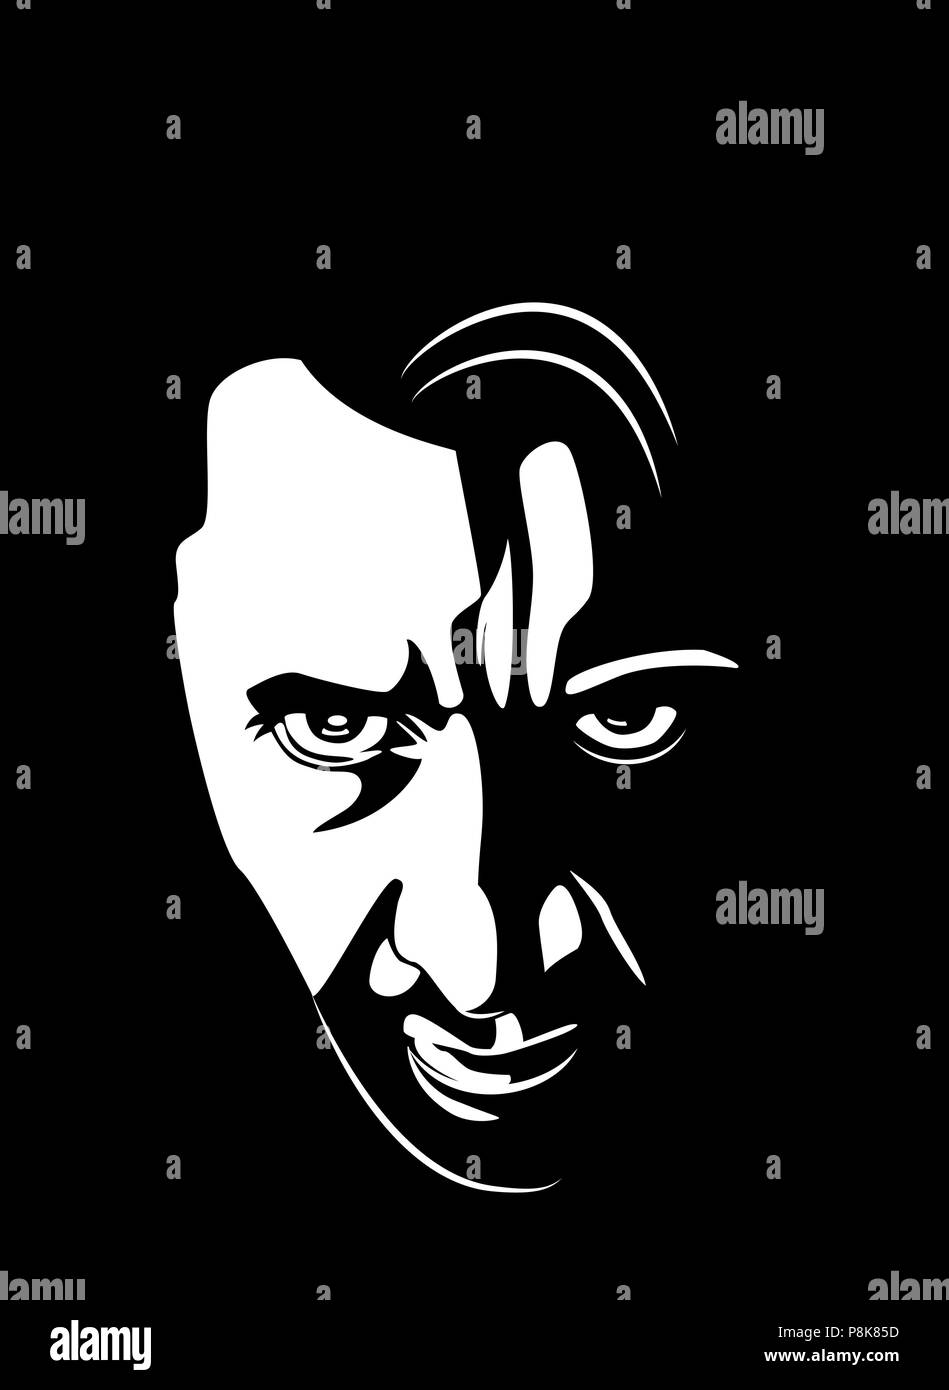 Angry male face - Stock Vector